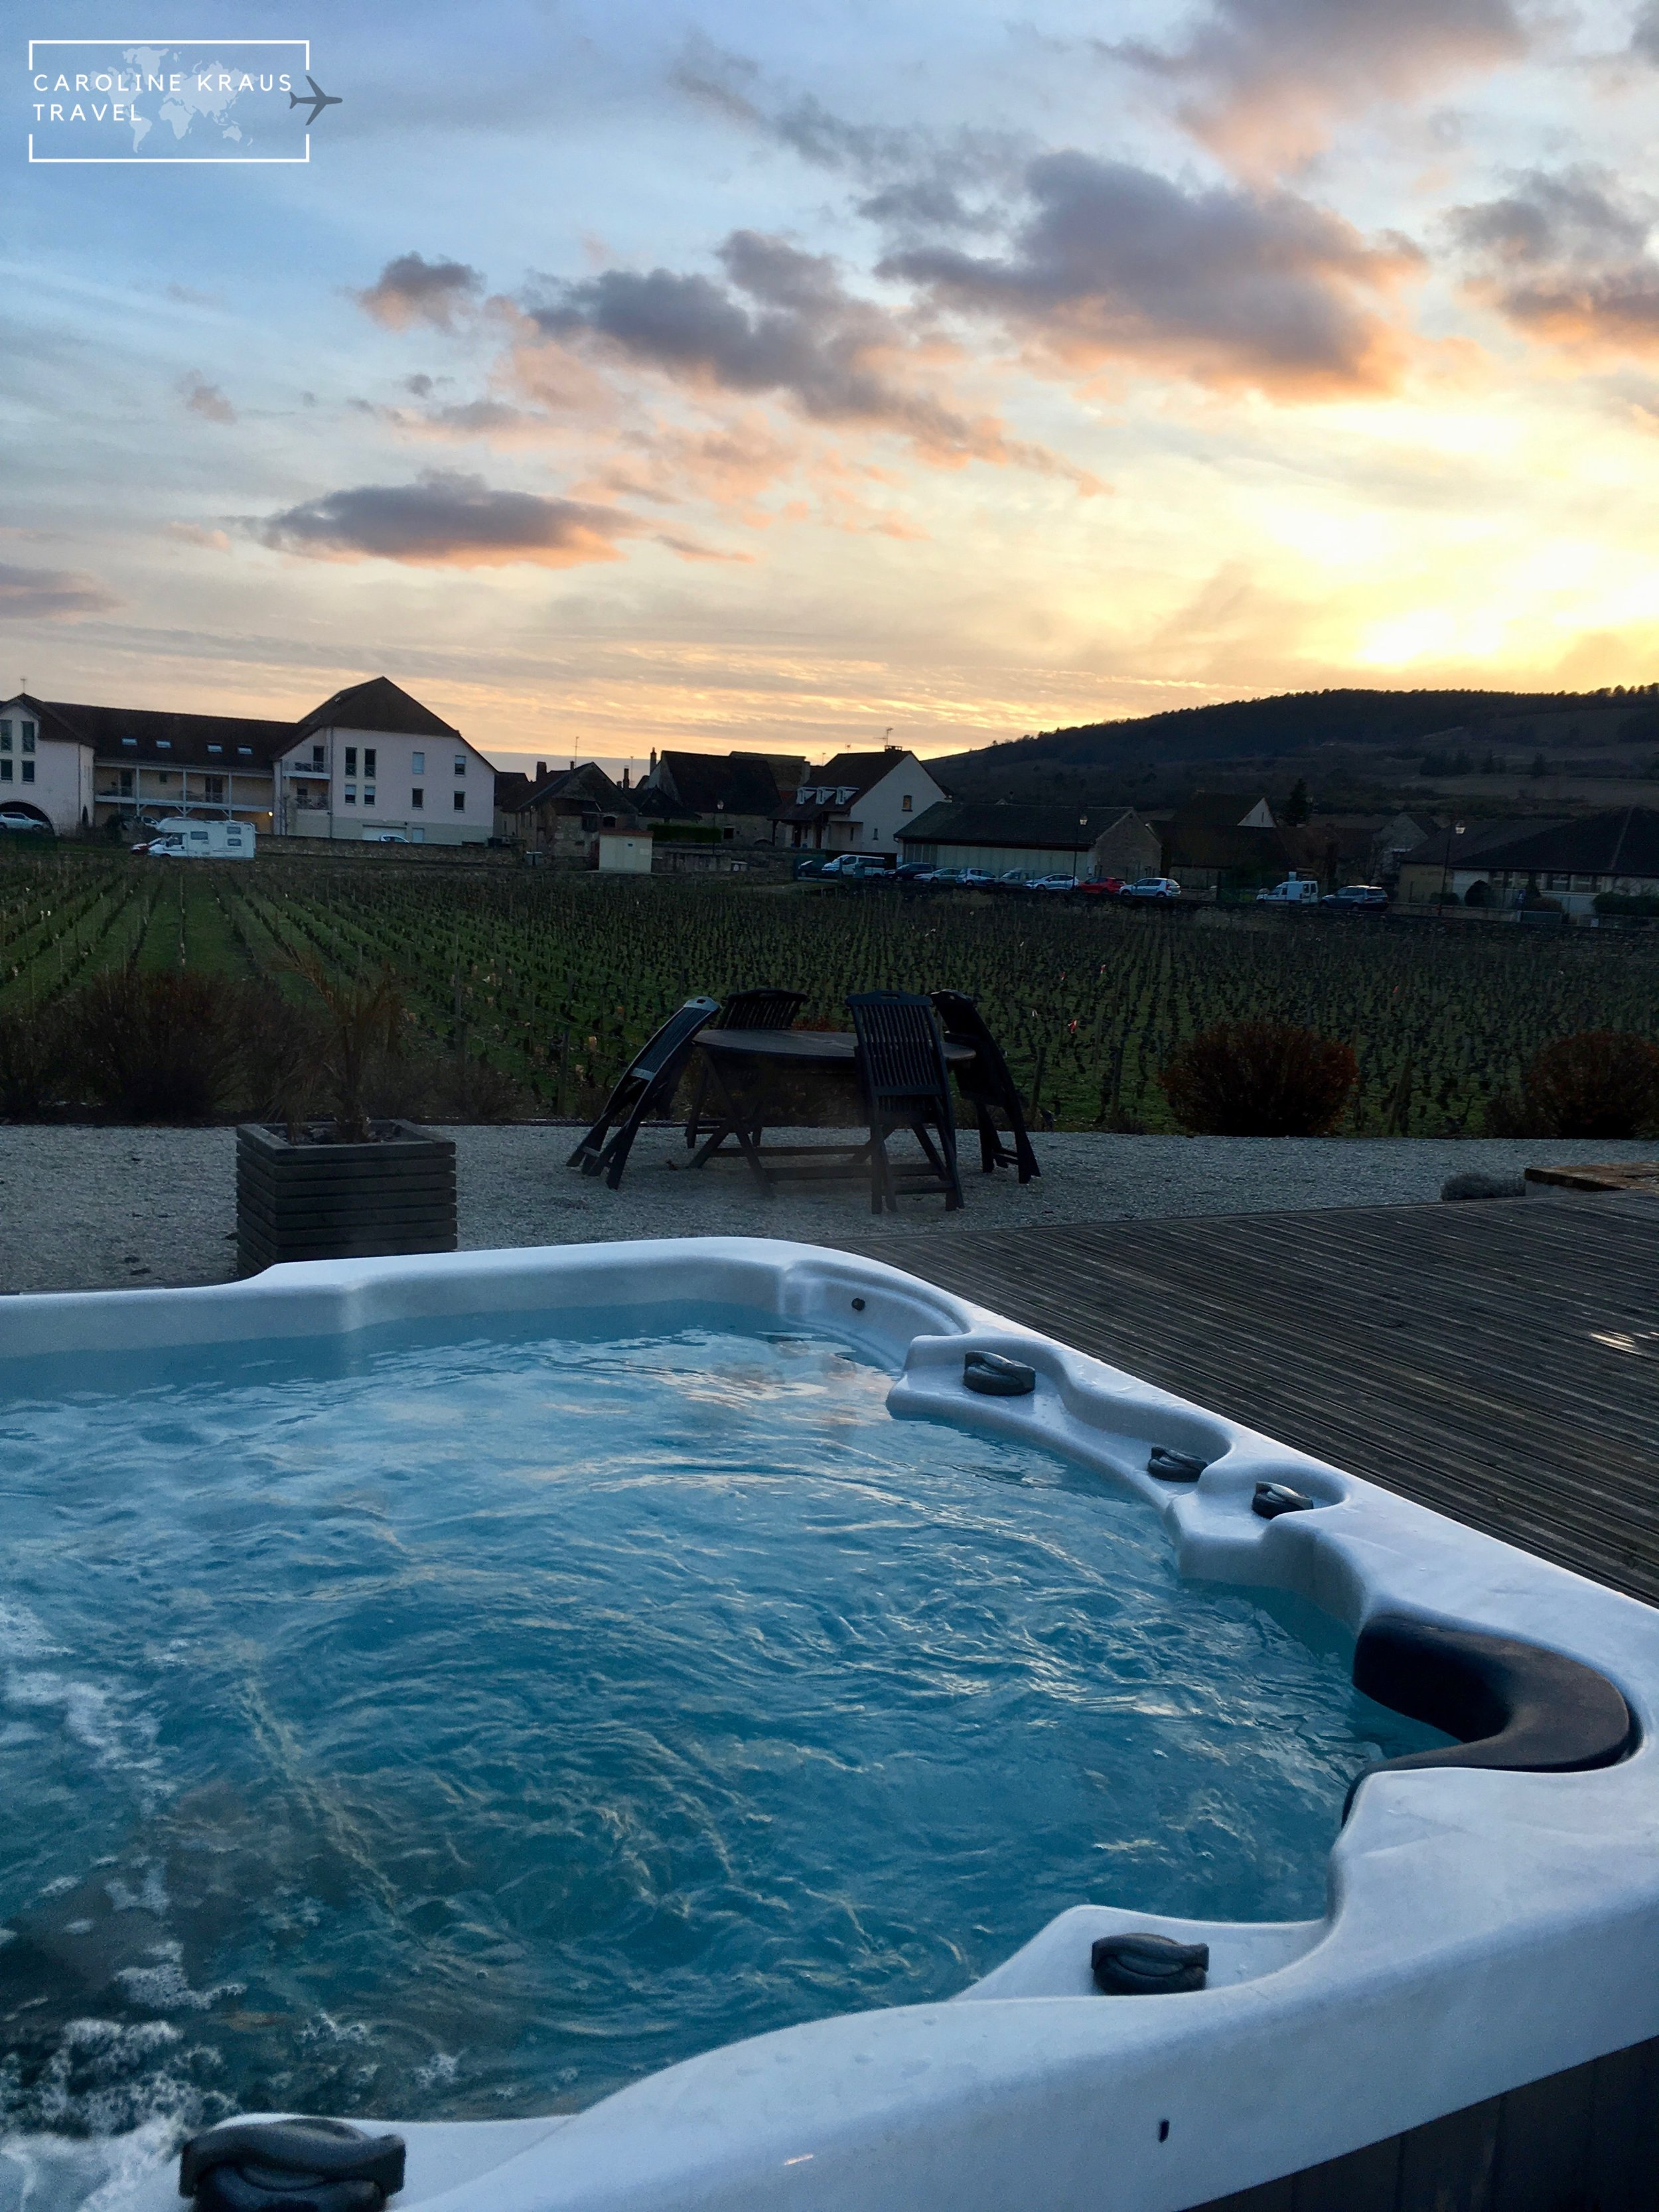 Our hot tub at sunset